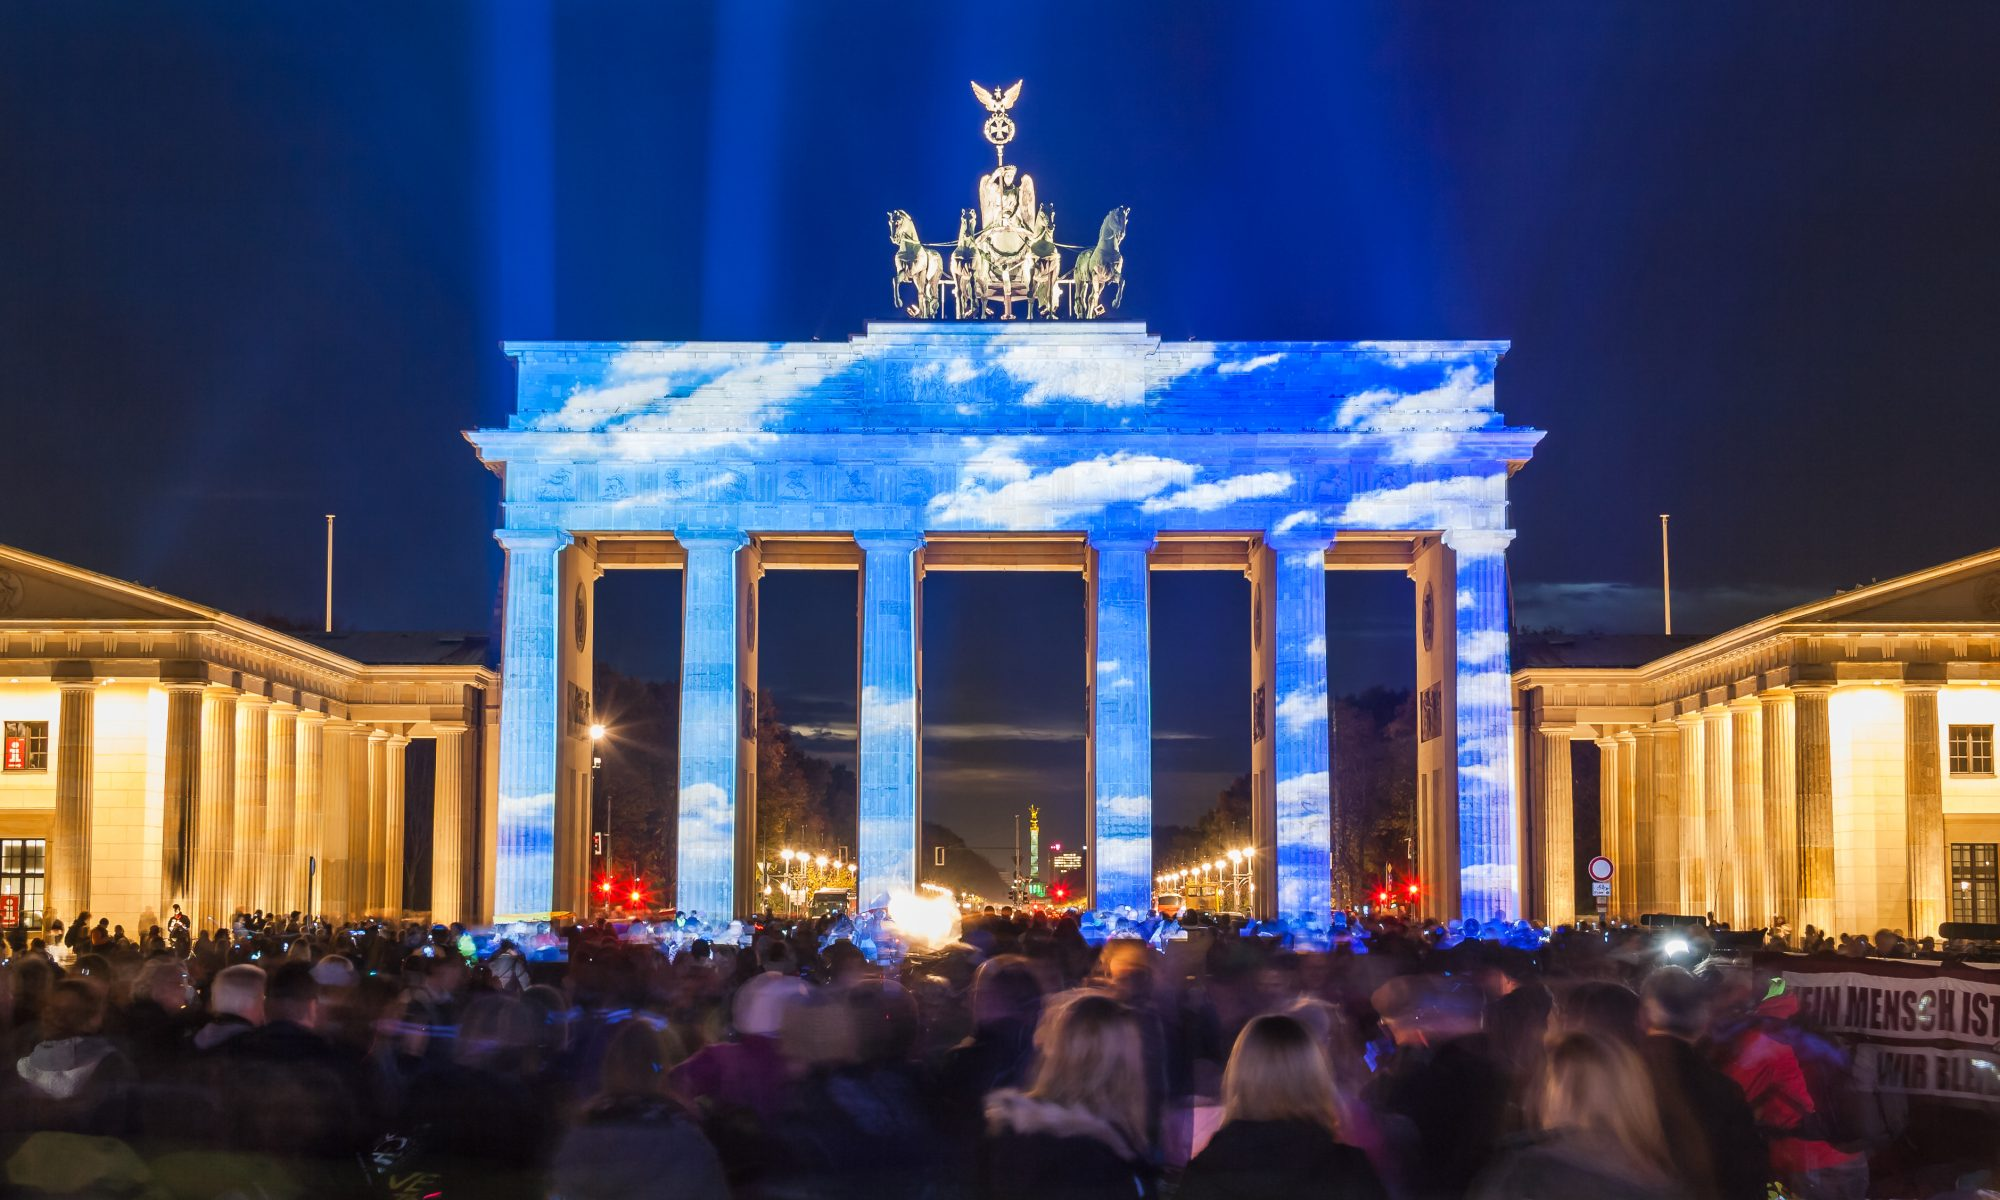 Brandenburger Tor ◆ With love to Berlin ◆ powered by Zander & Parnter